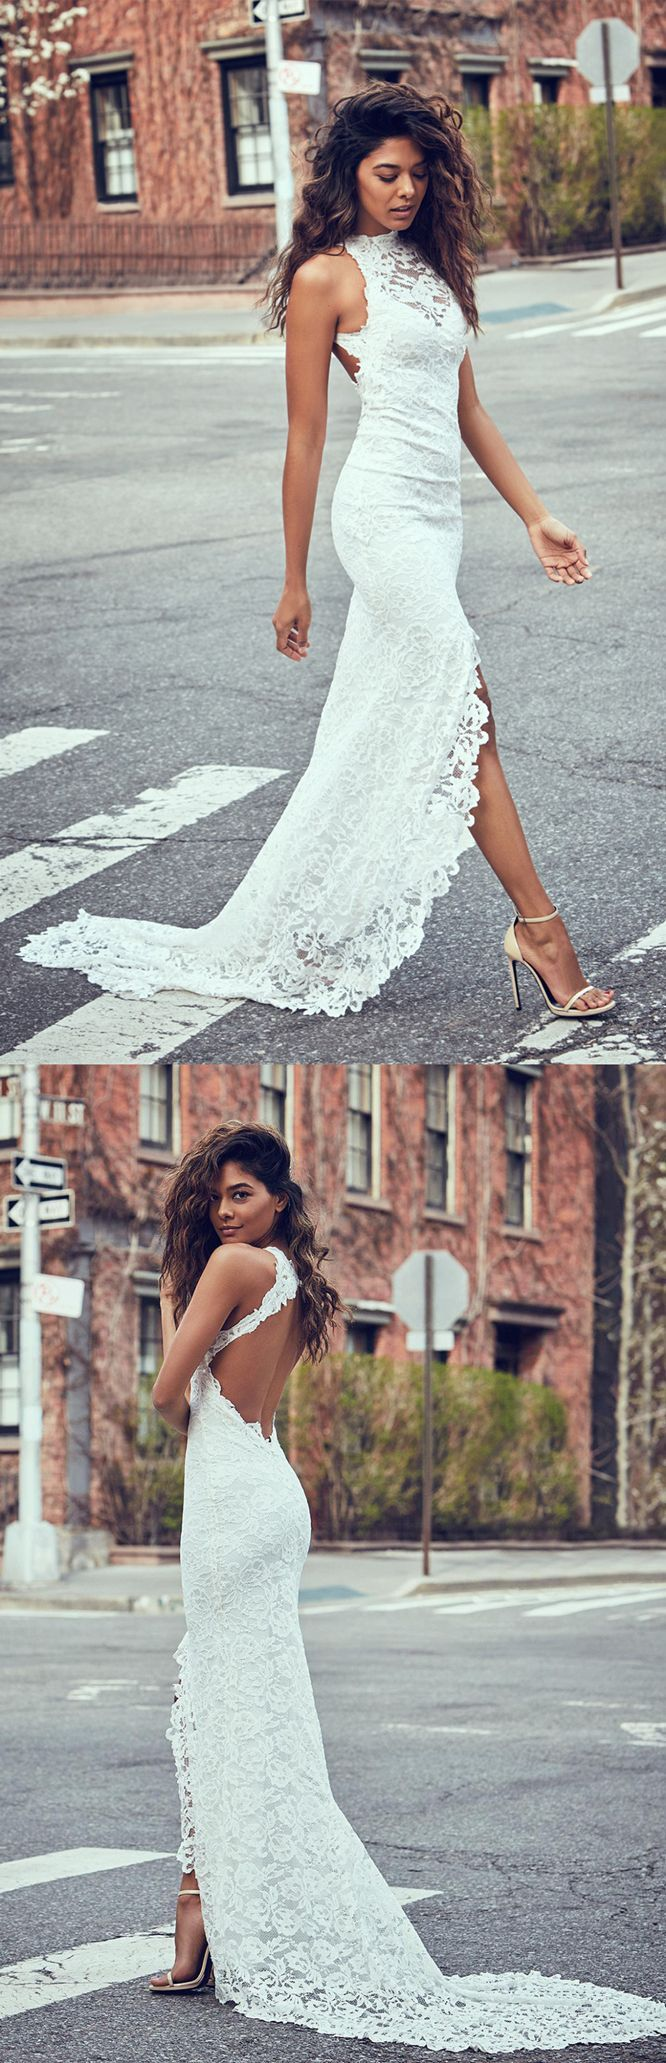 mermaid lace wedding dresses,open back long bridal gowns, simple split wedding dress